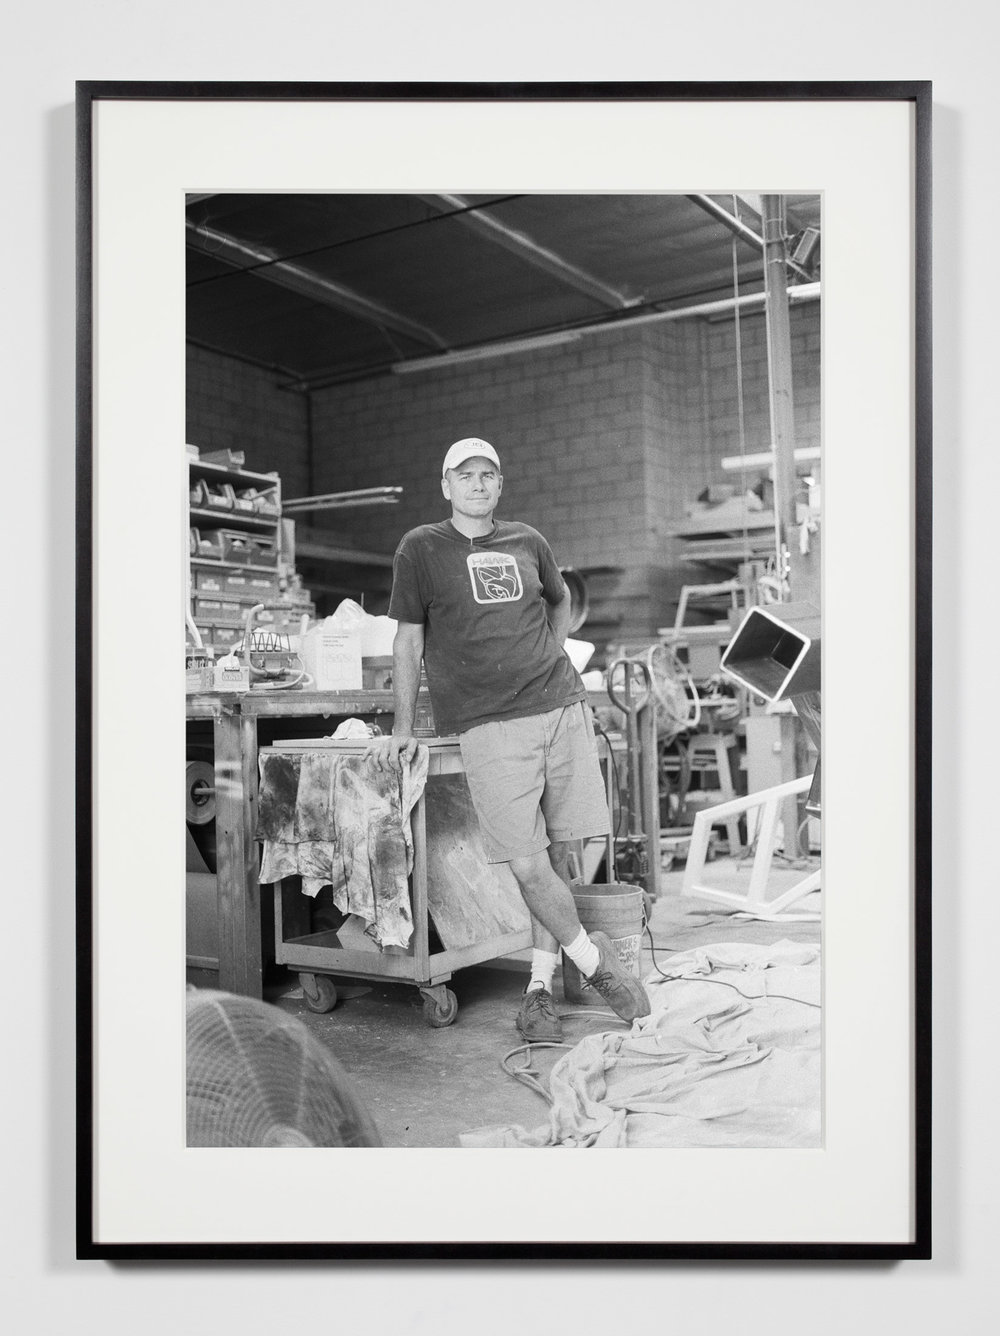 Fabricator, Glendale, California, July 9, 2008   2011  Epson Ultrachrome K3 archival ink jet print on Hahnemühle Photo Rag paper  36 3/8 x 26 3/8 inches   Industrial Portraits, 2008–    A Diagram of Forces, 2011